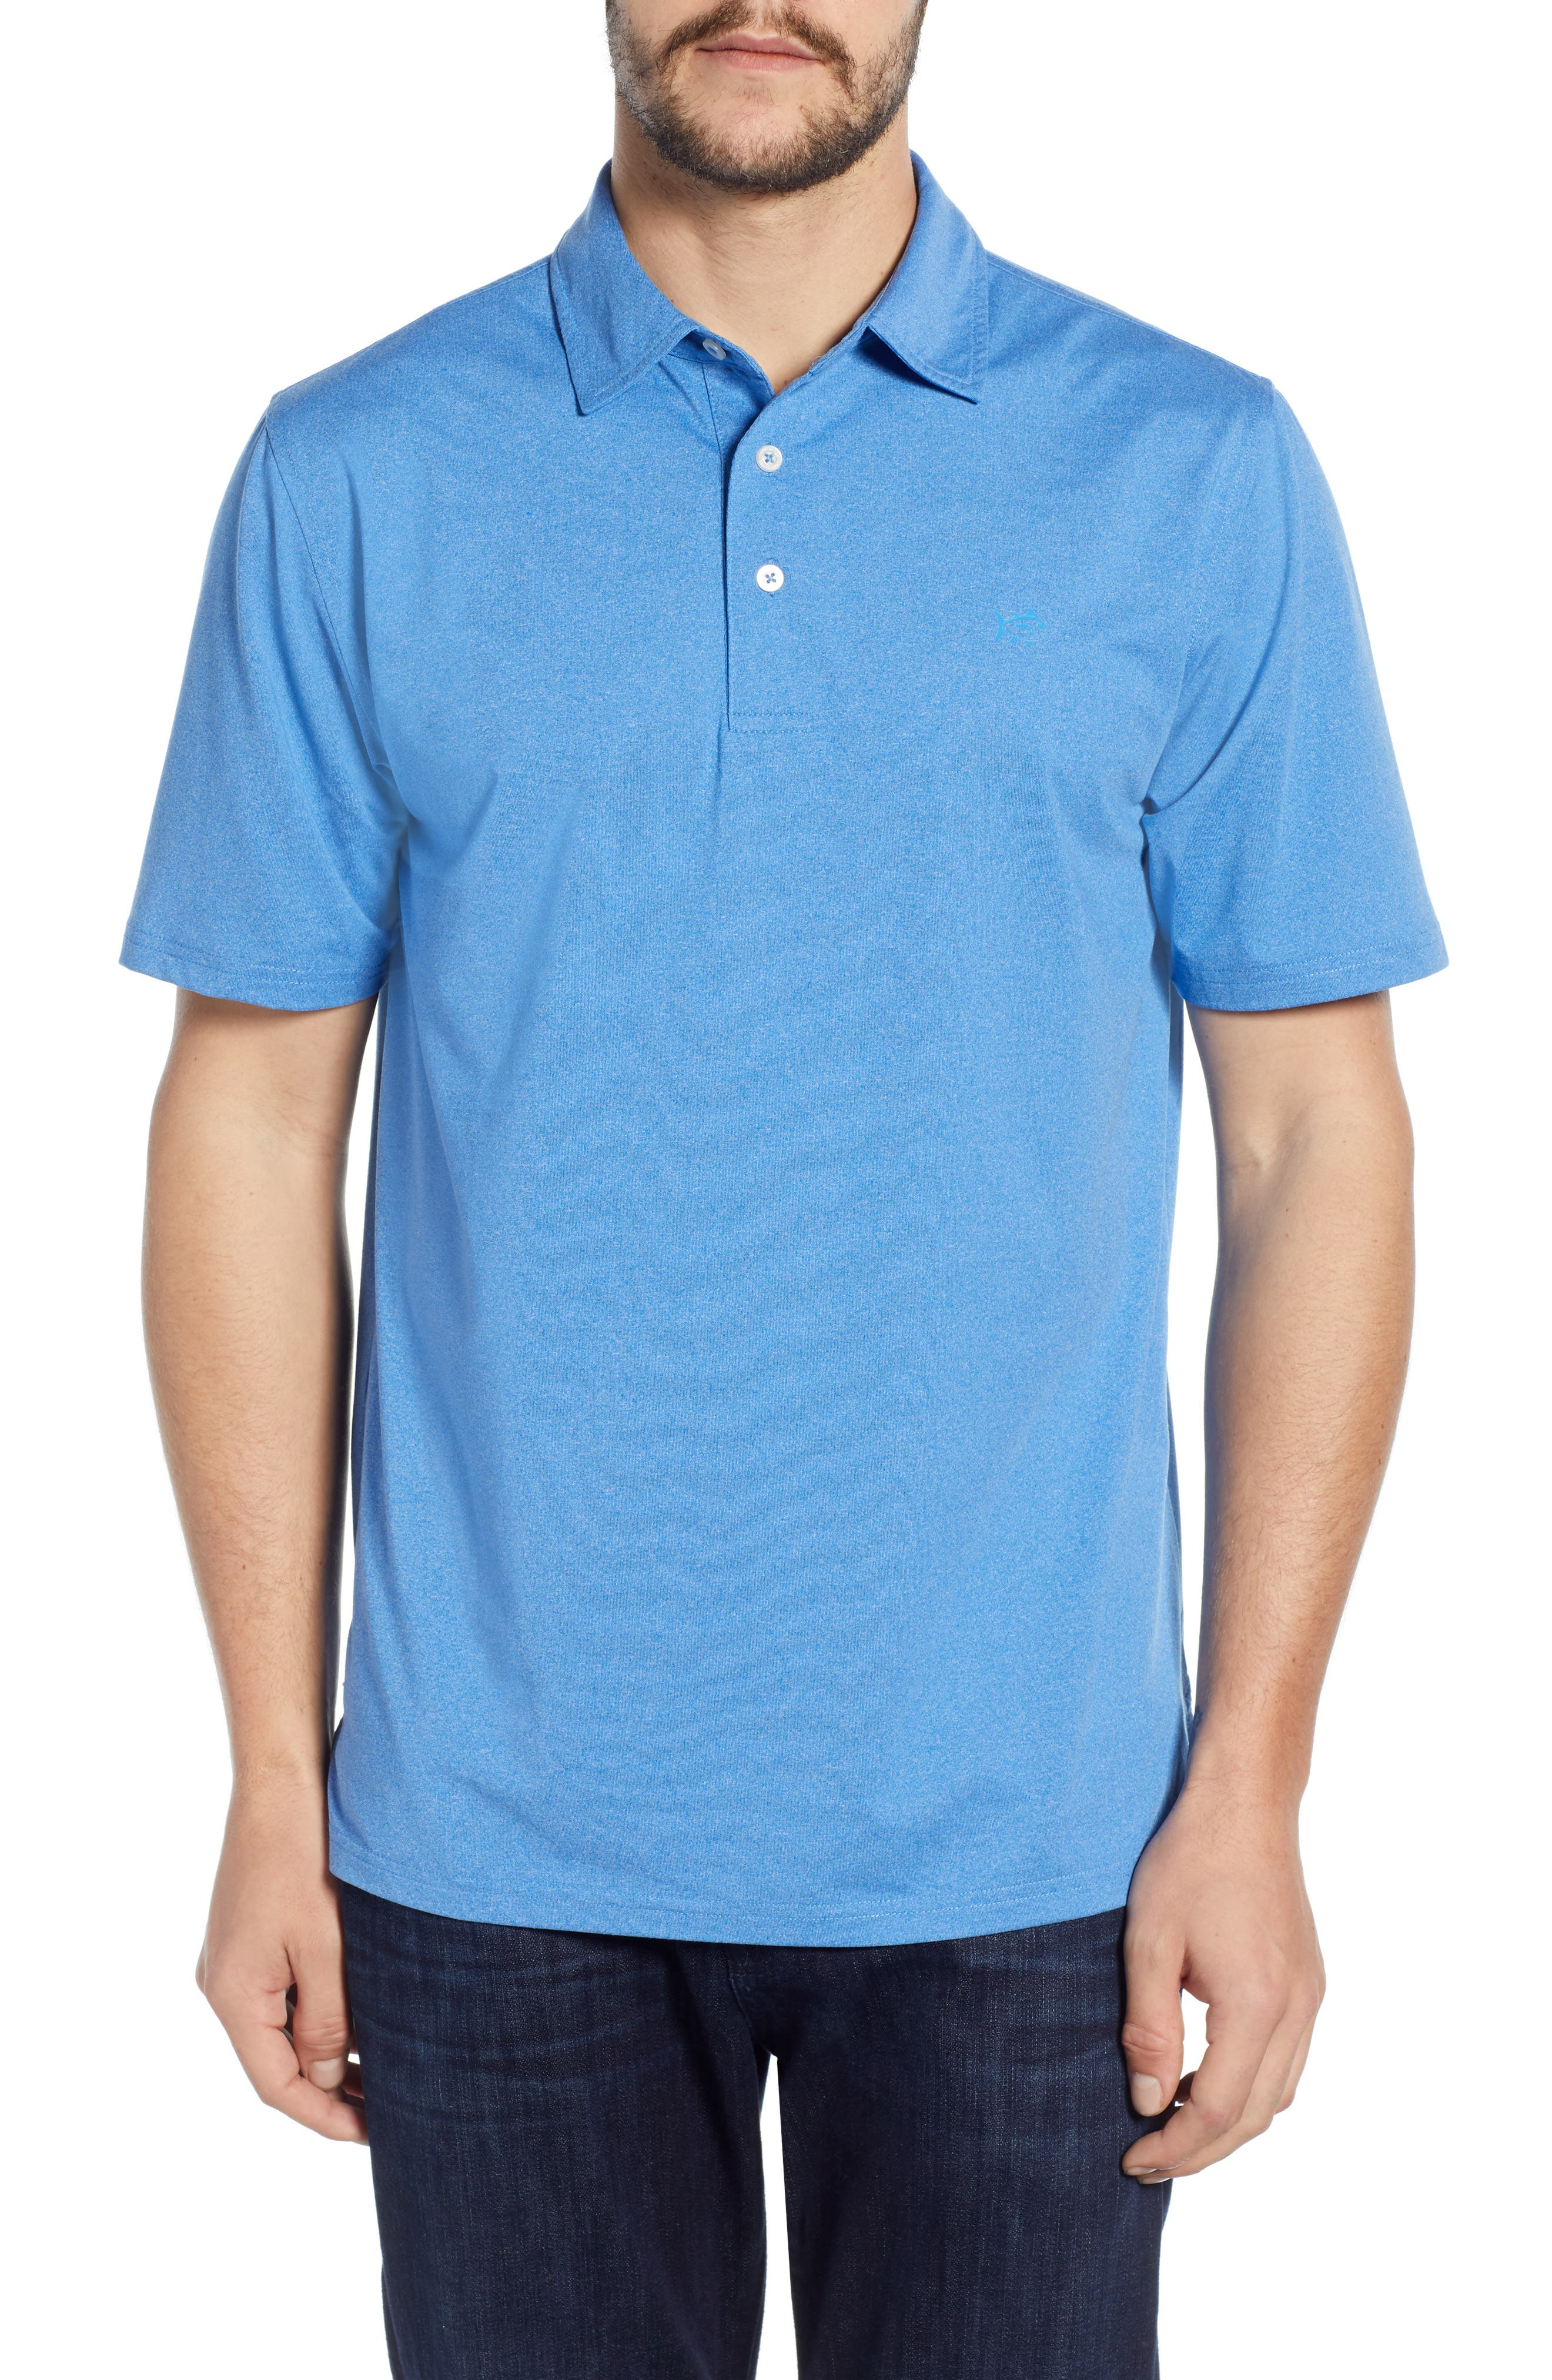 Southern Tide Driver Performance Jersey Polo, Blue